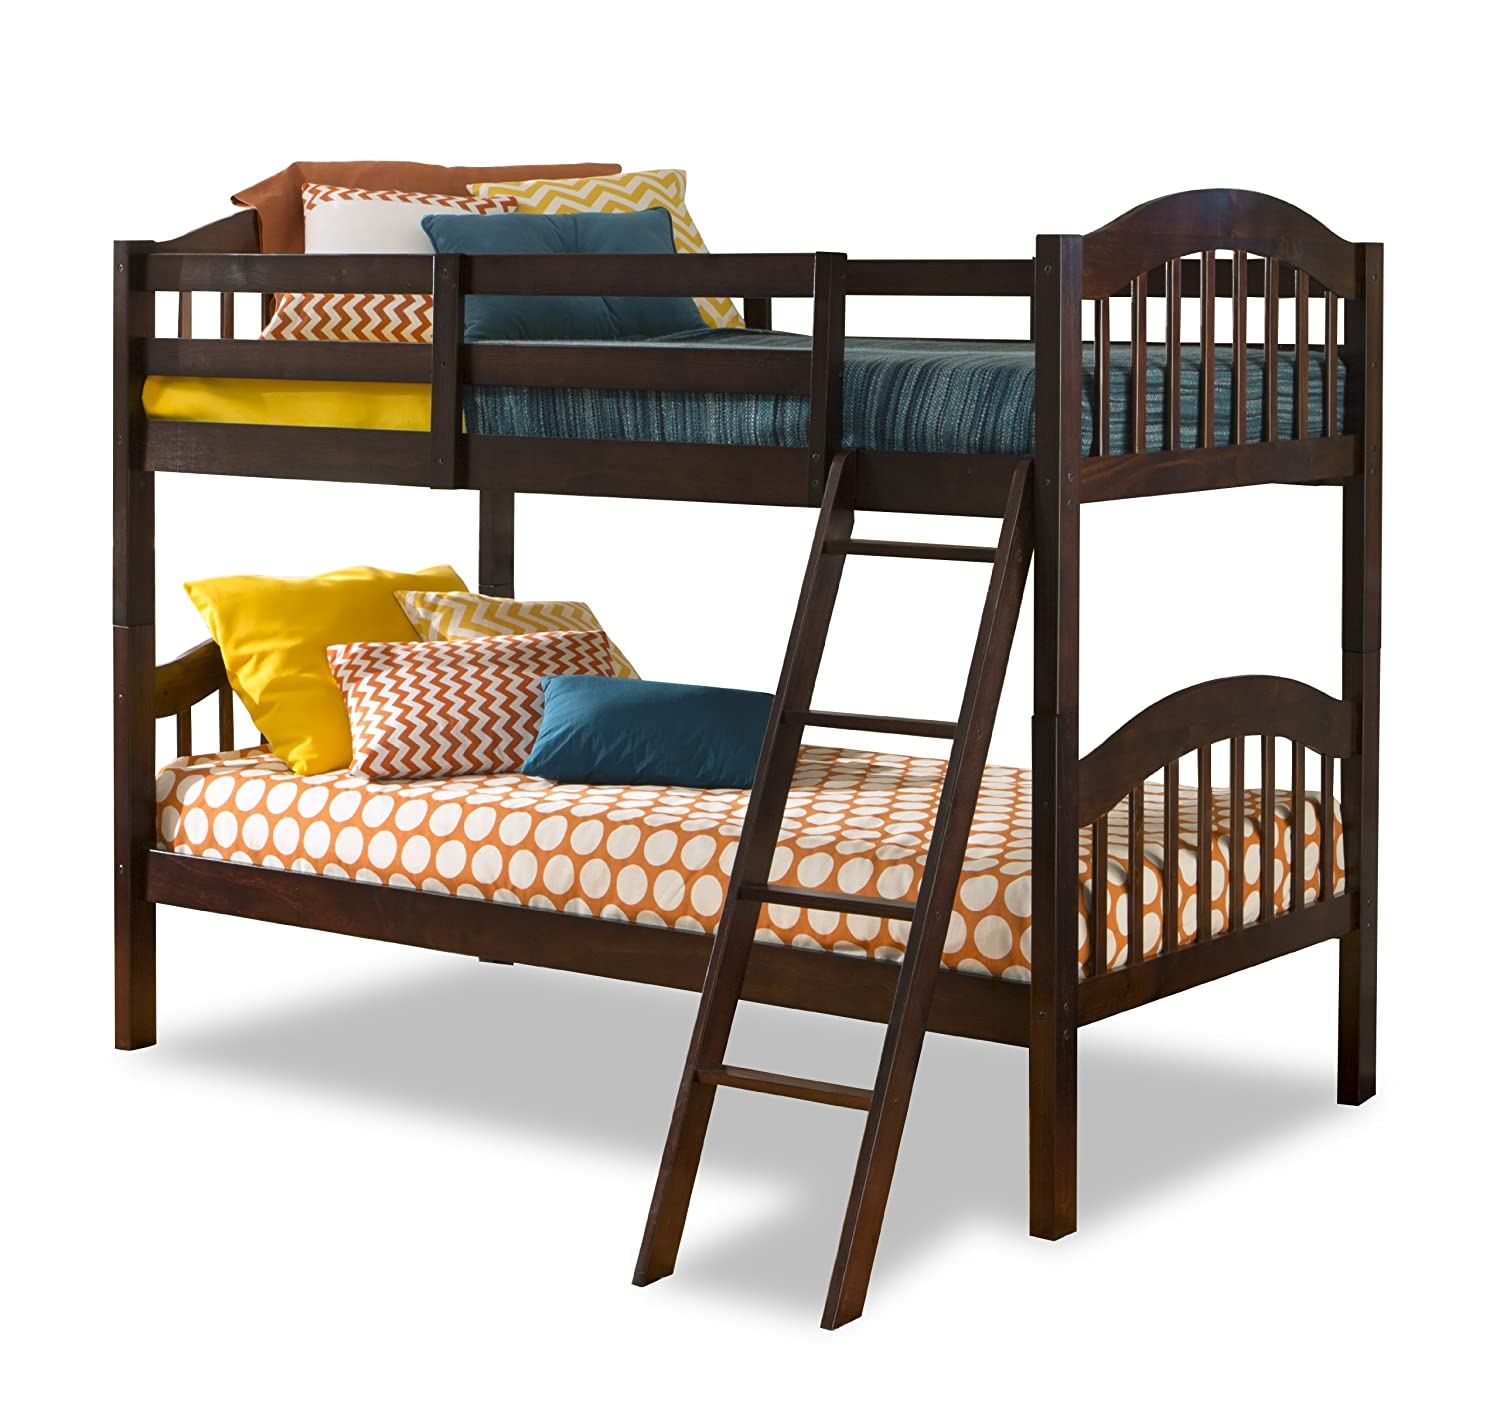 5 Best Kids Bunk Beds under $200 Reviews of 2021 7